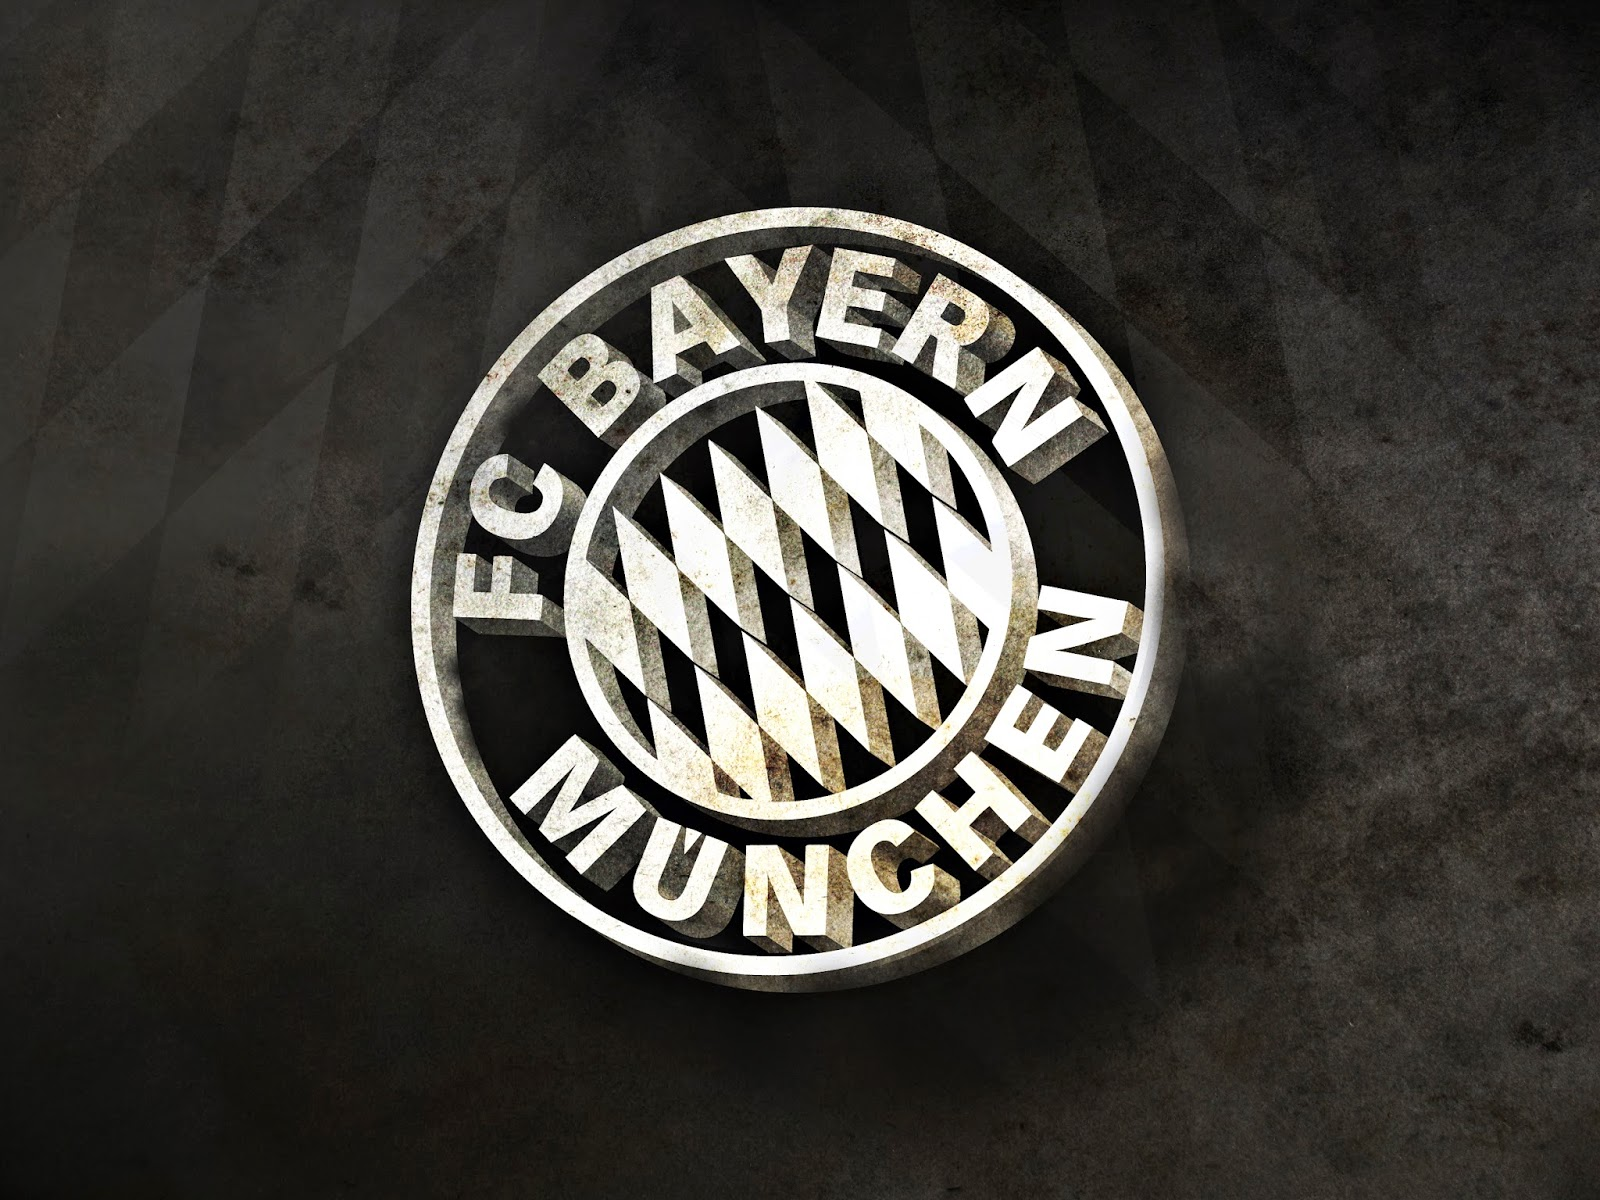 Bayern Munchen Football Club Wallpaper: Bayern Munchen Football Club Wallpaper